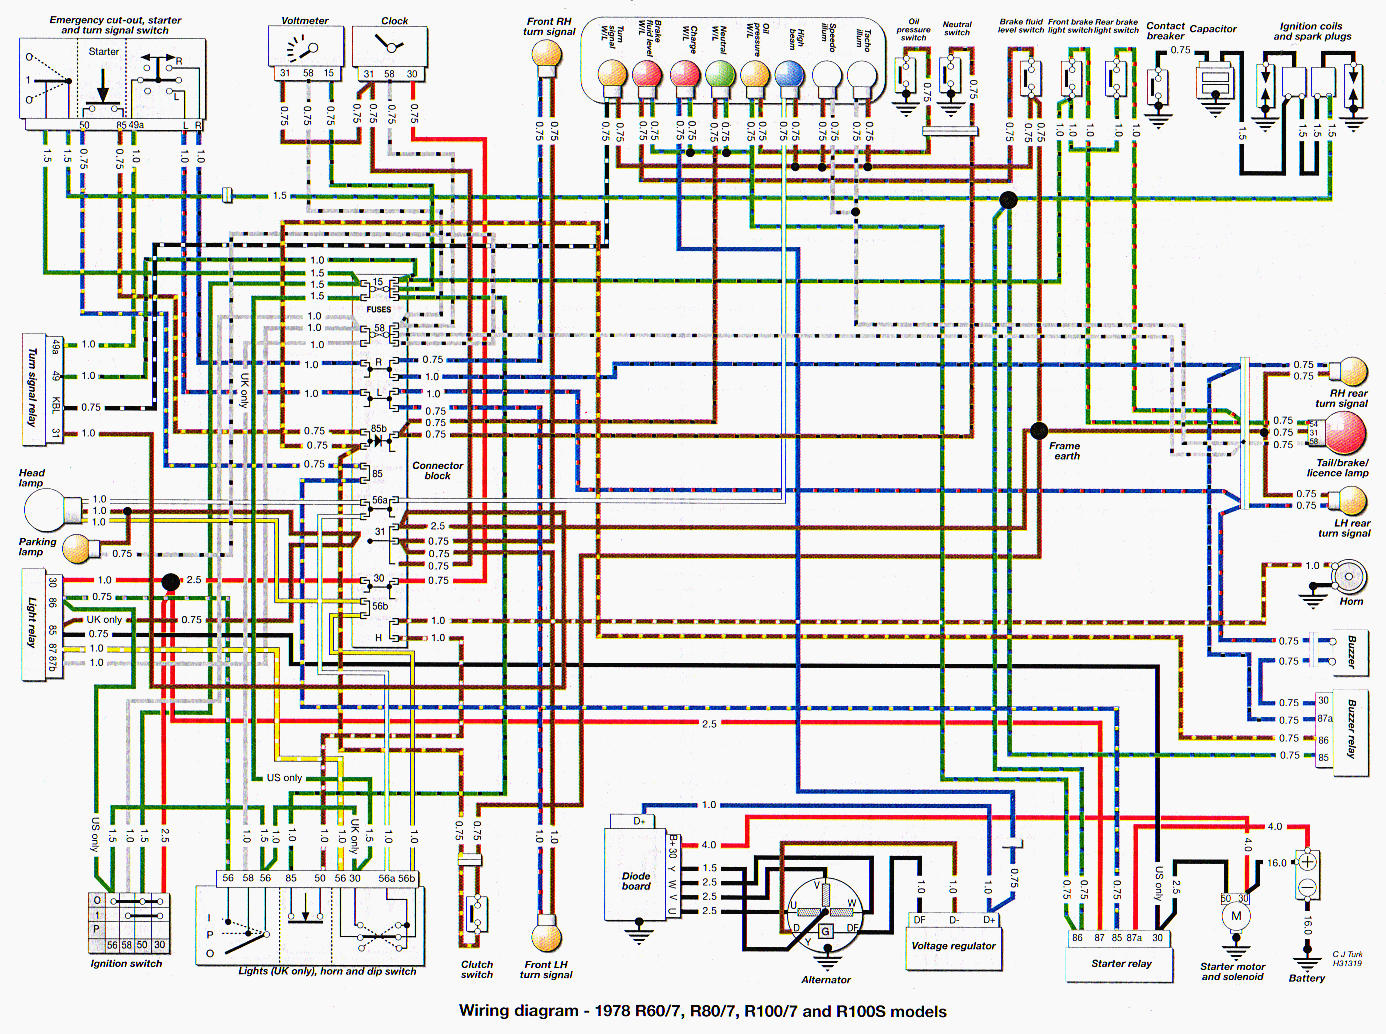 bmw wiring diagram wiring diagram progresif